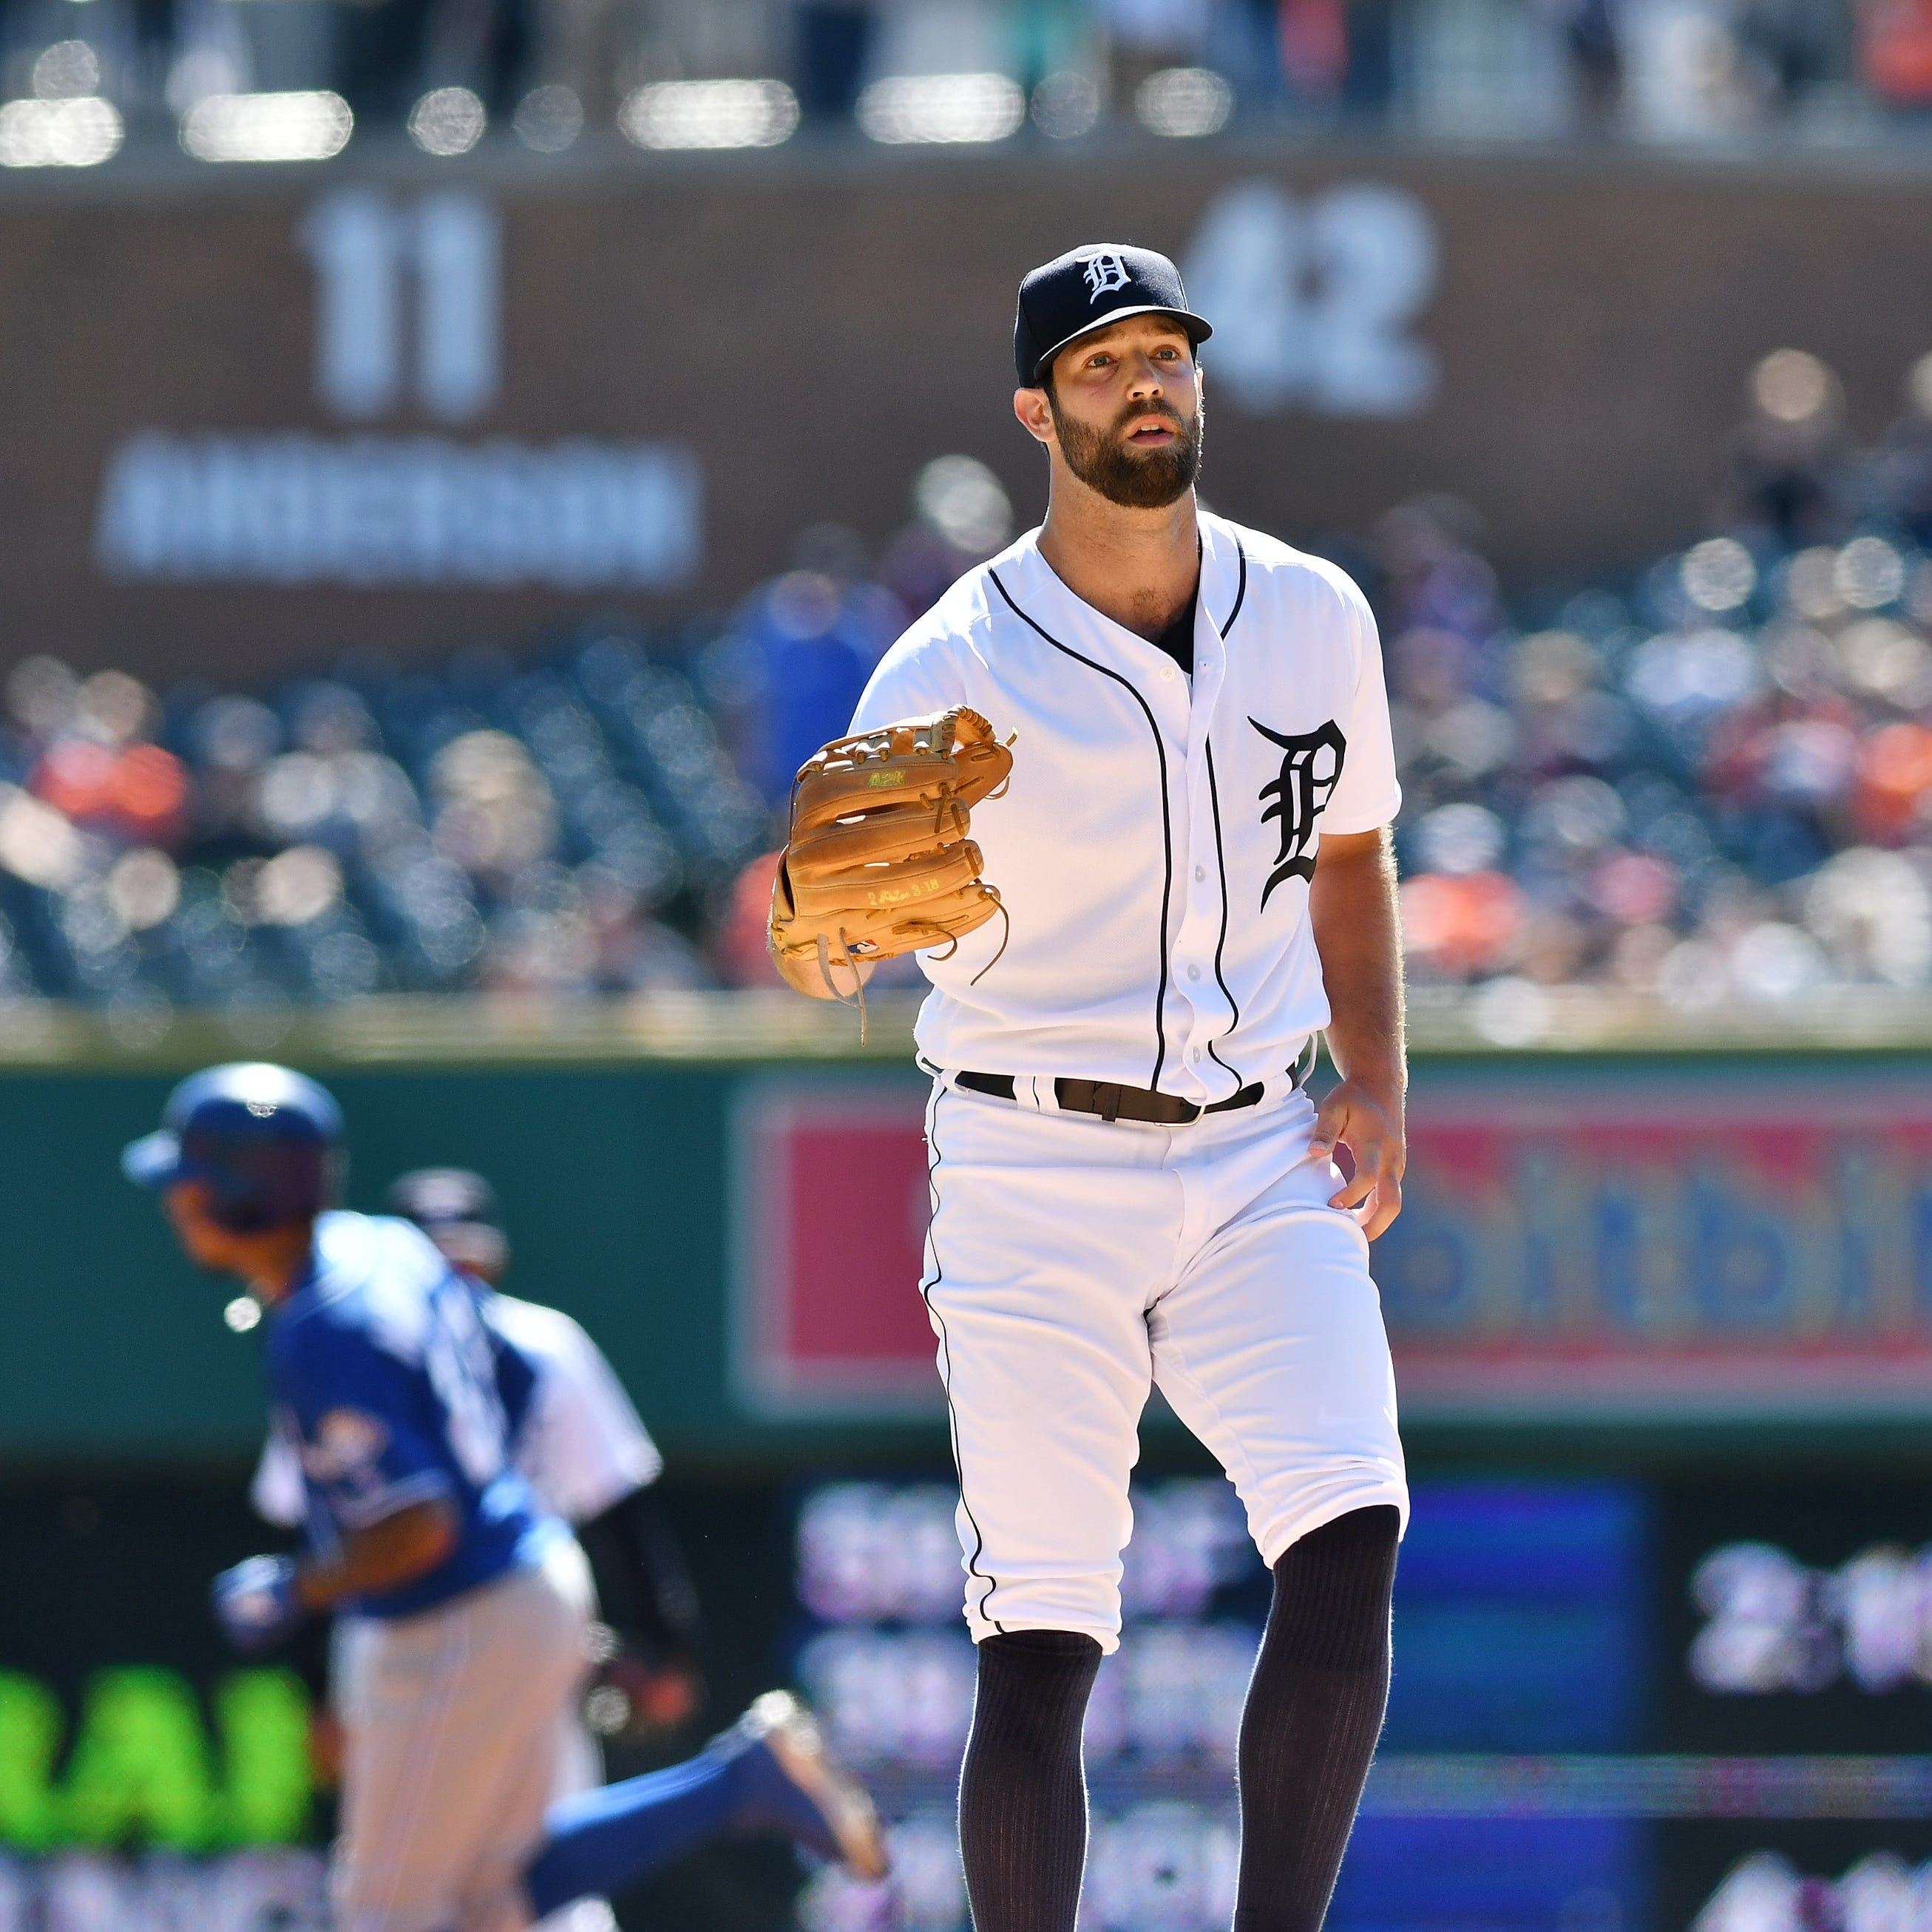 Tigers bring curtain down quietly on event-filled season at Comerica Park